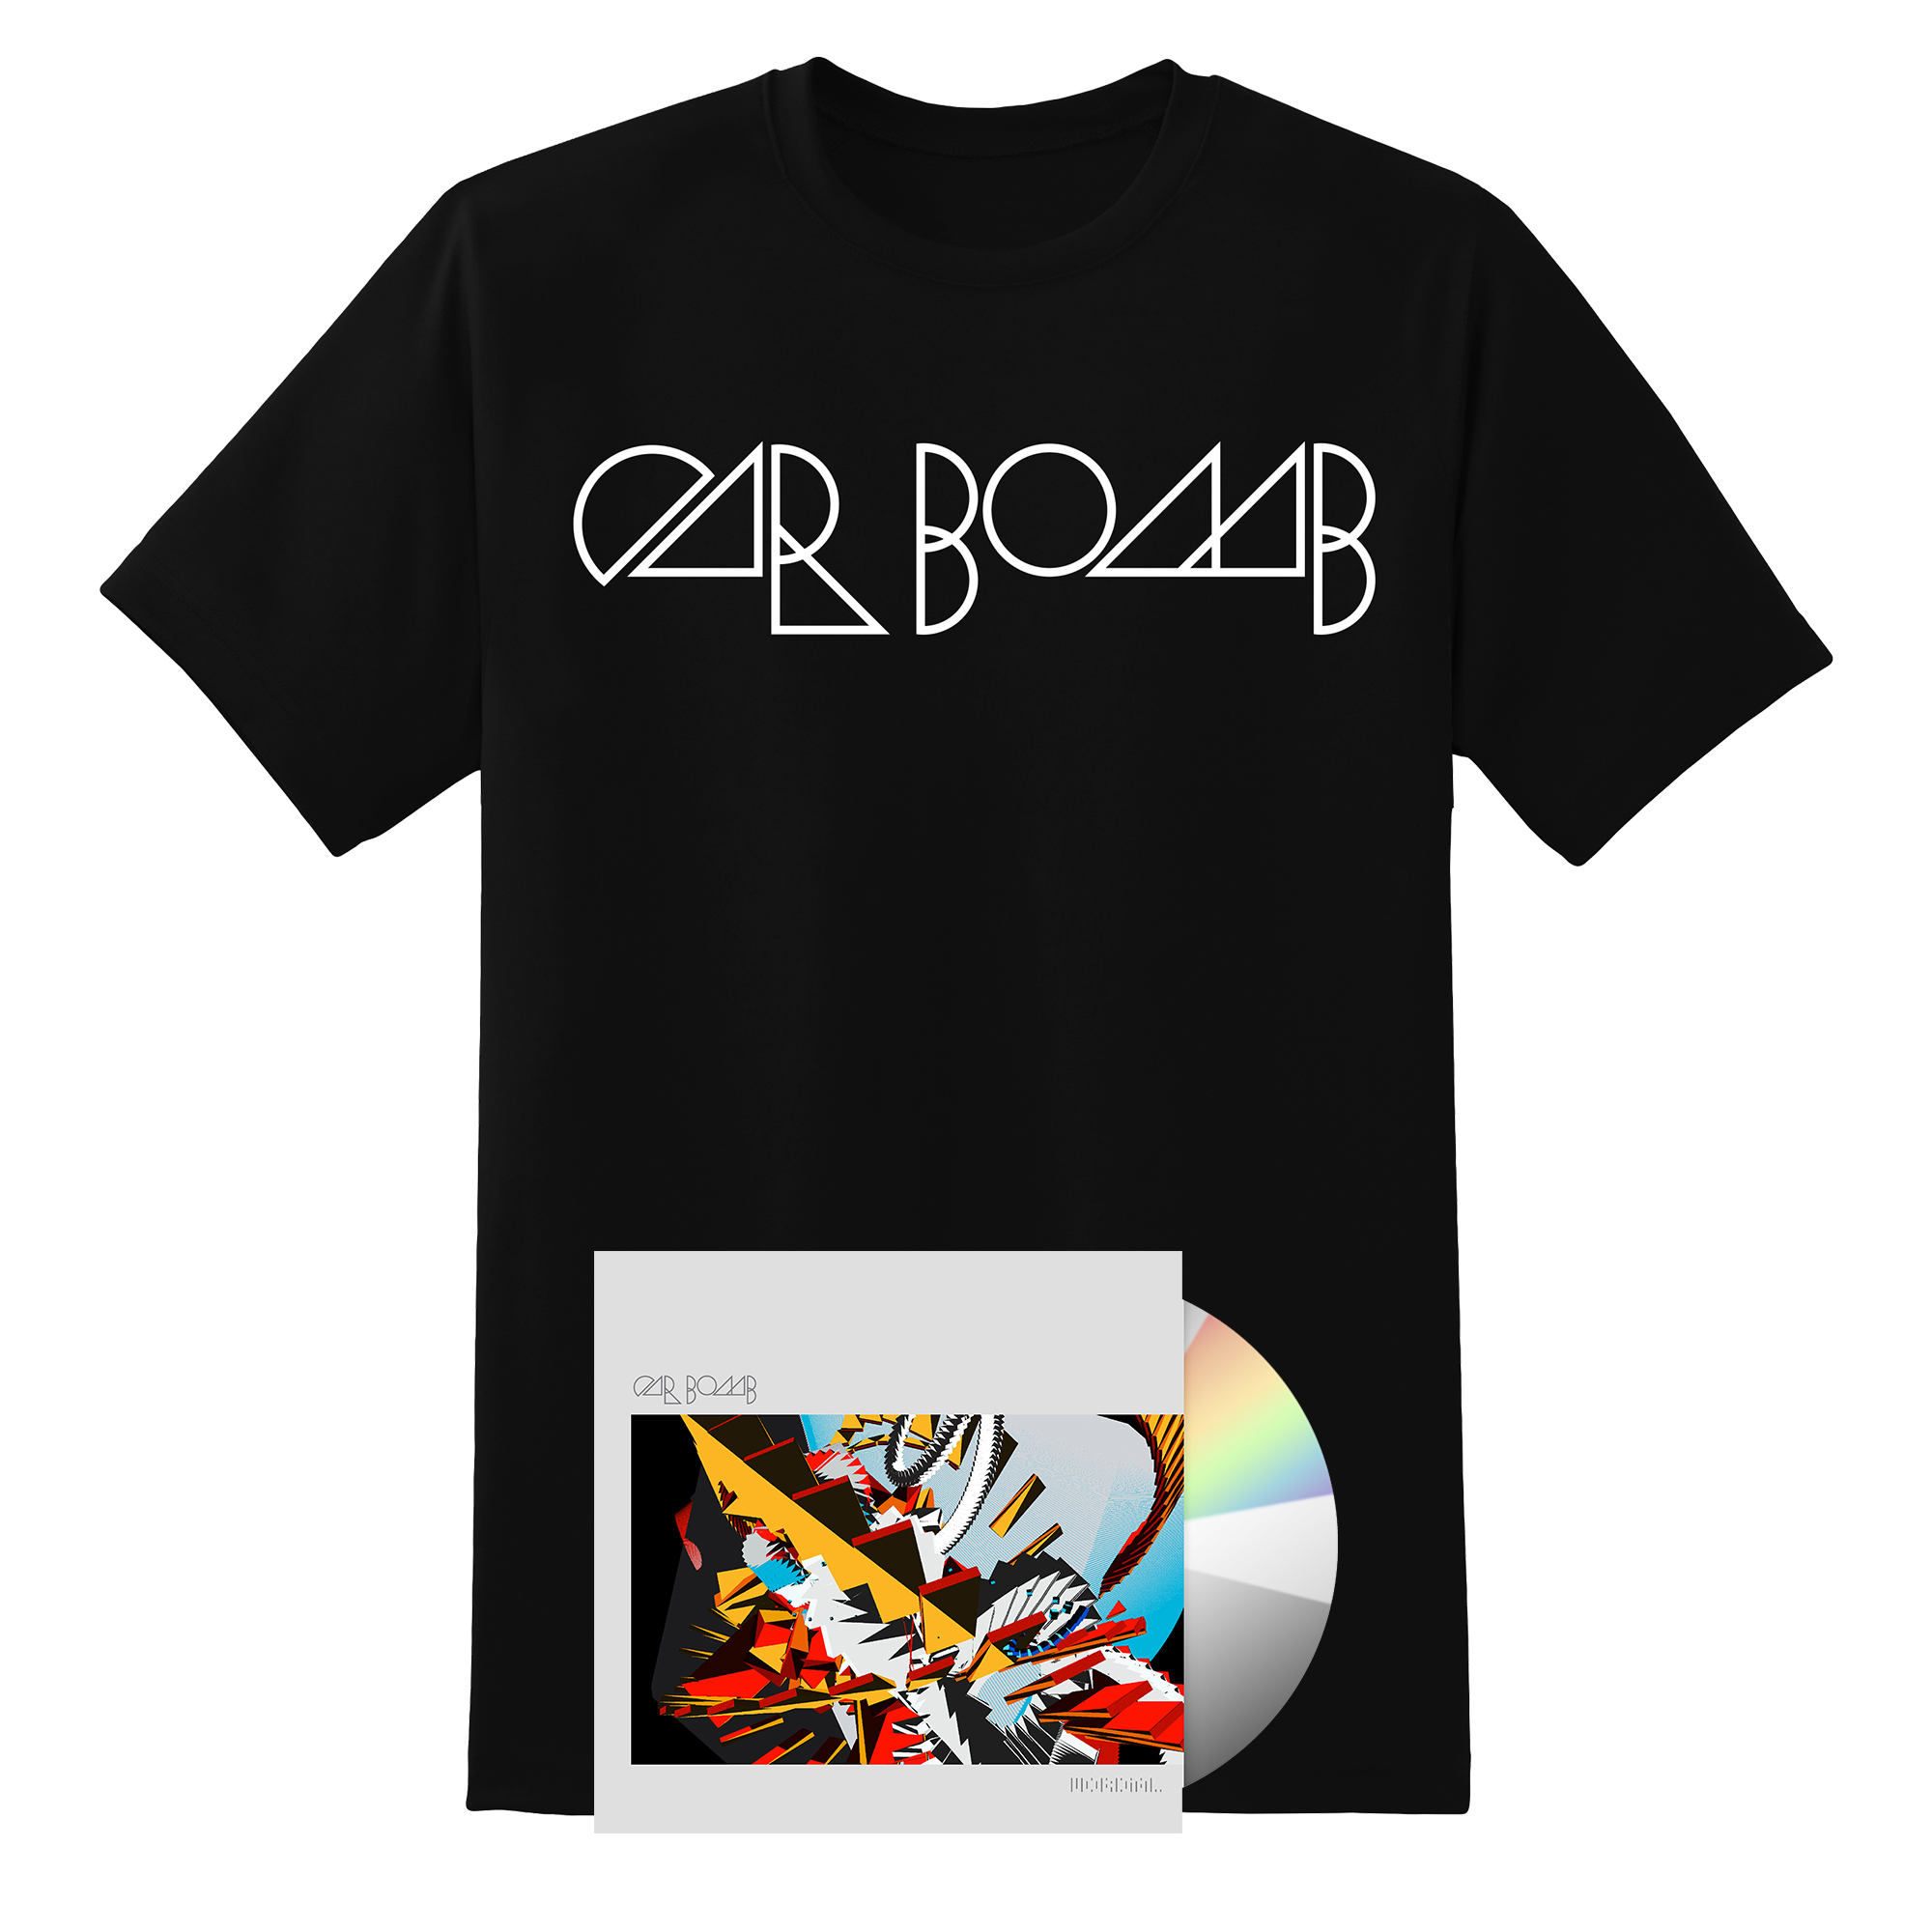 Car Bomb logo shirt + CD